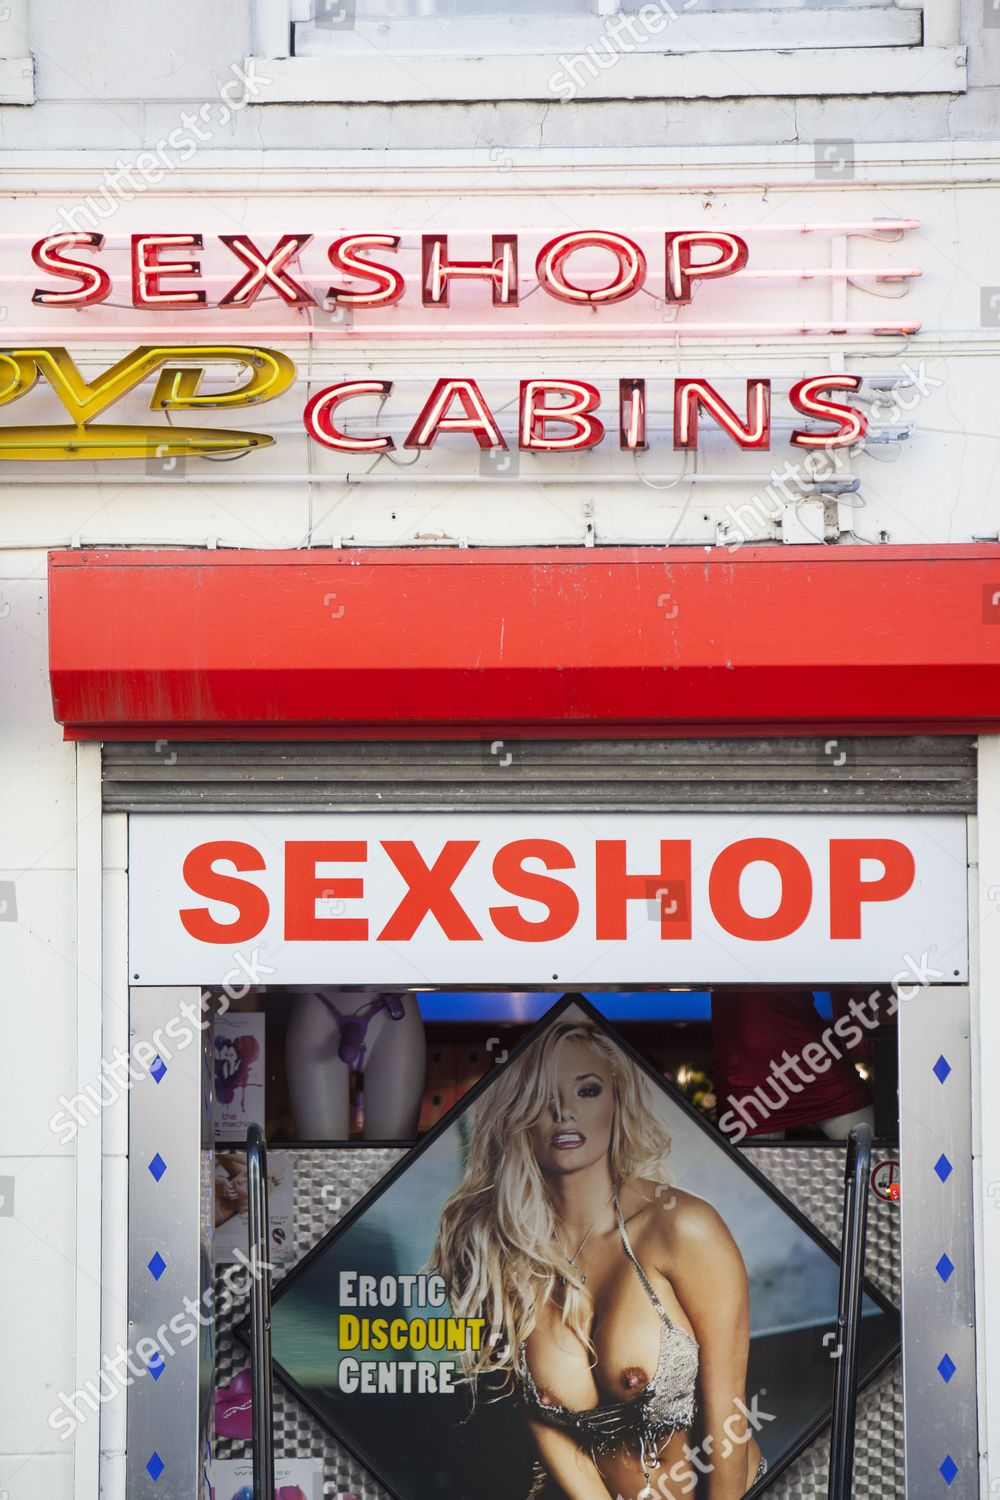 Erotic discount center something is